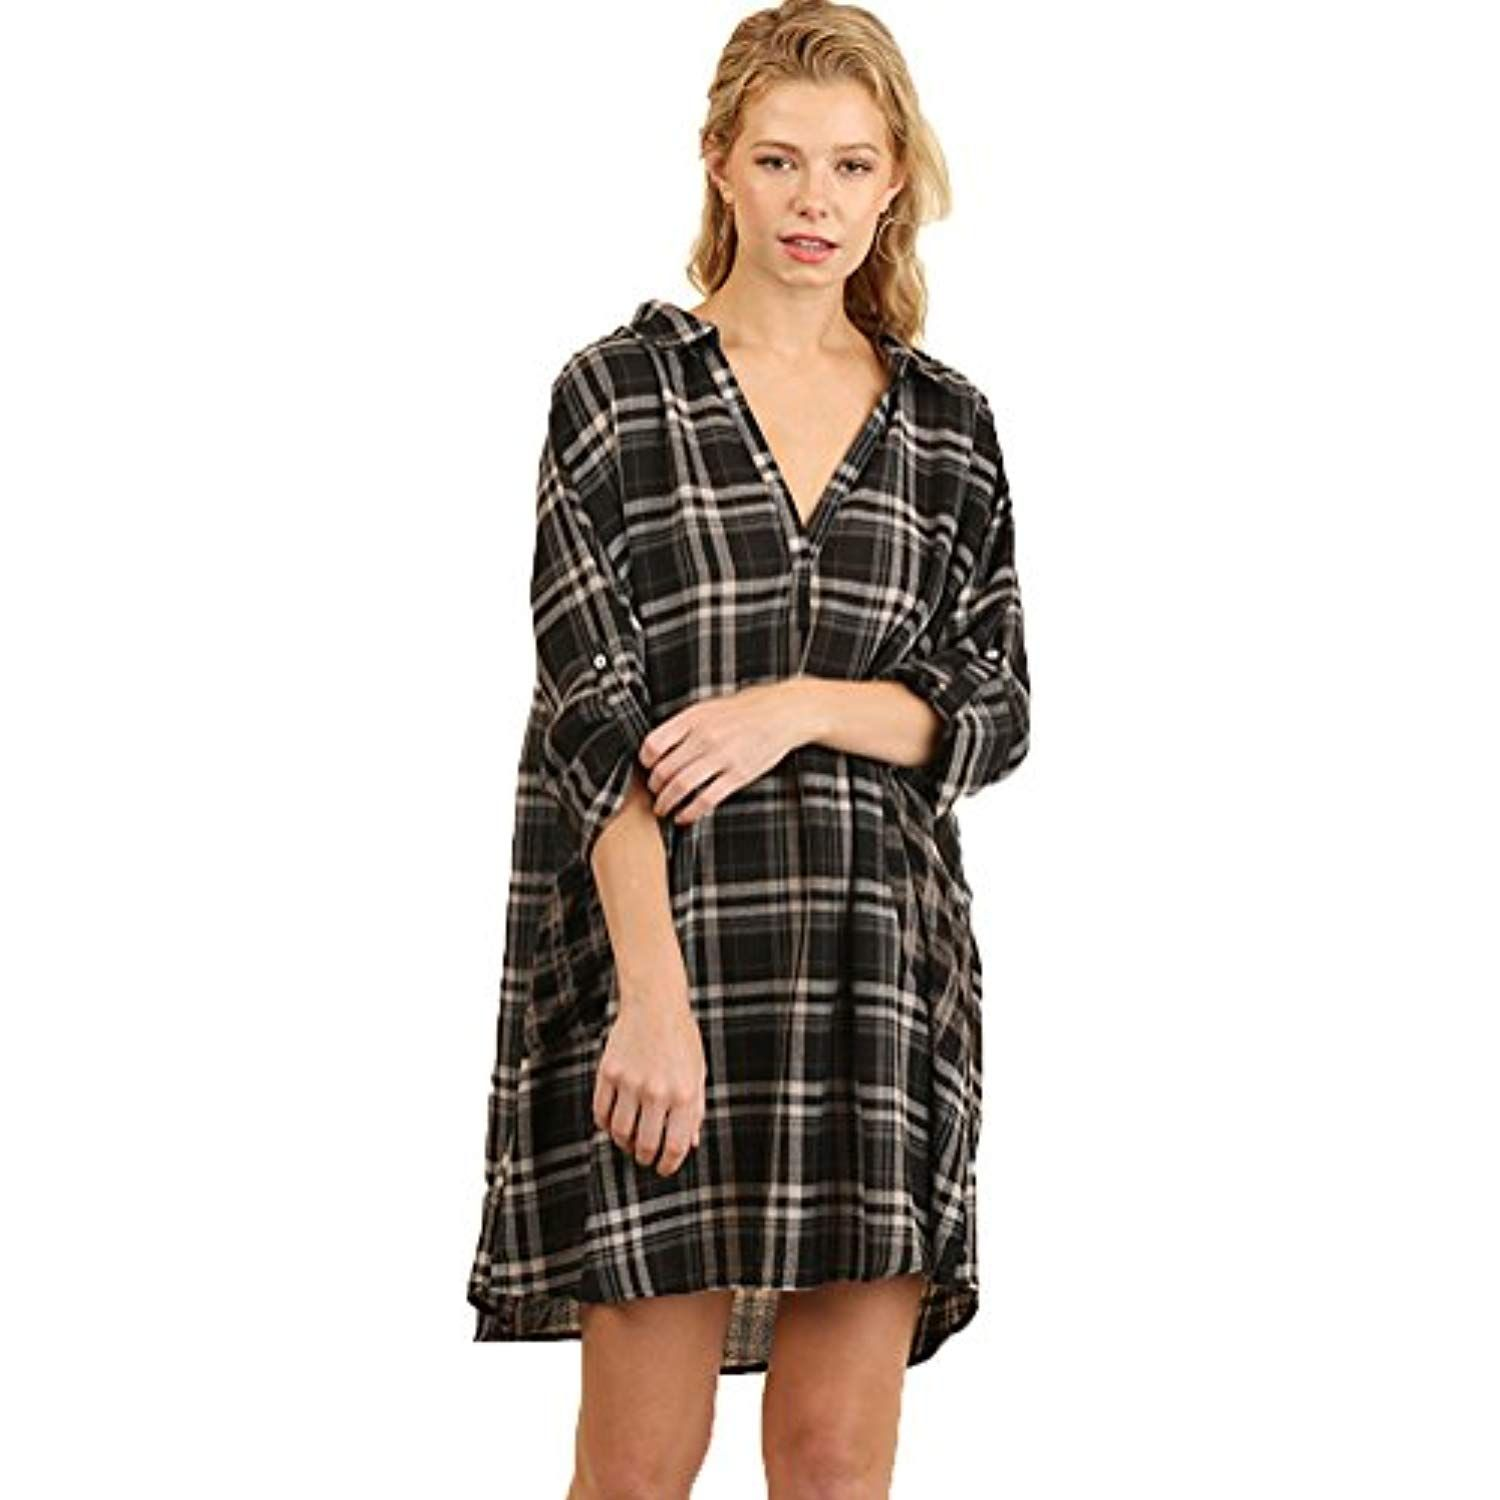 257841ab9e9 Women's Plaid Shirt Pocket Dress/Tunic with Roll up Sleeves >>> Be sure to  check out this awesome product. (This is an affiliate link)